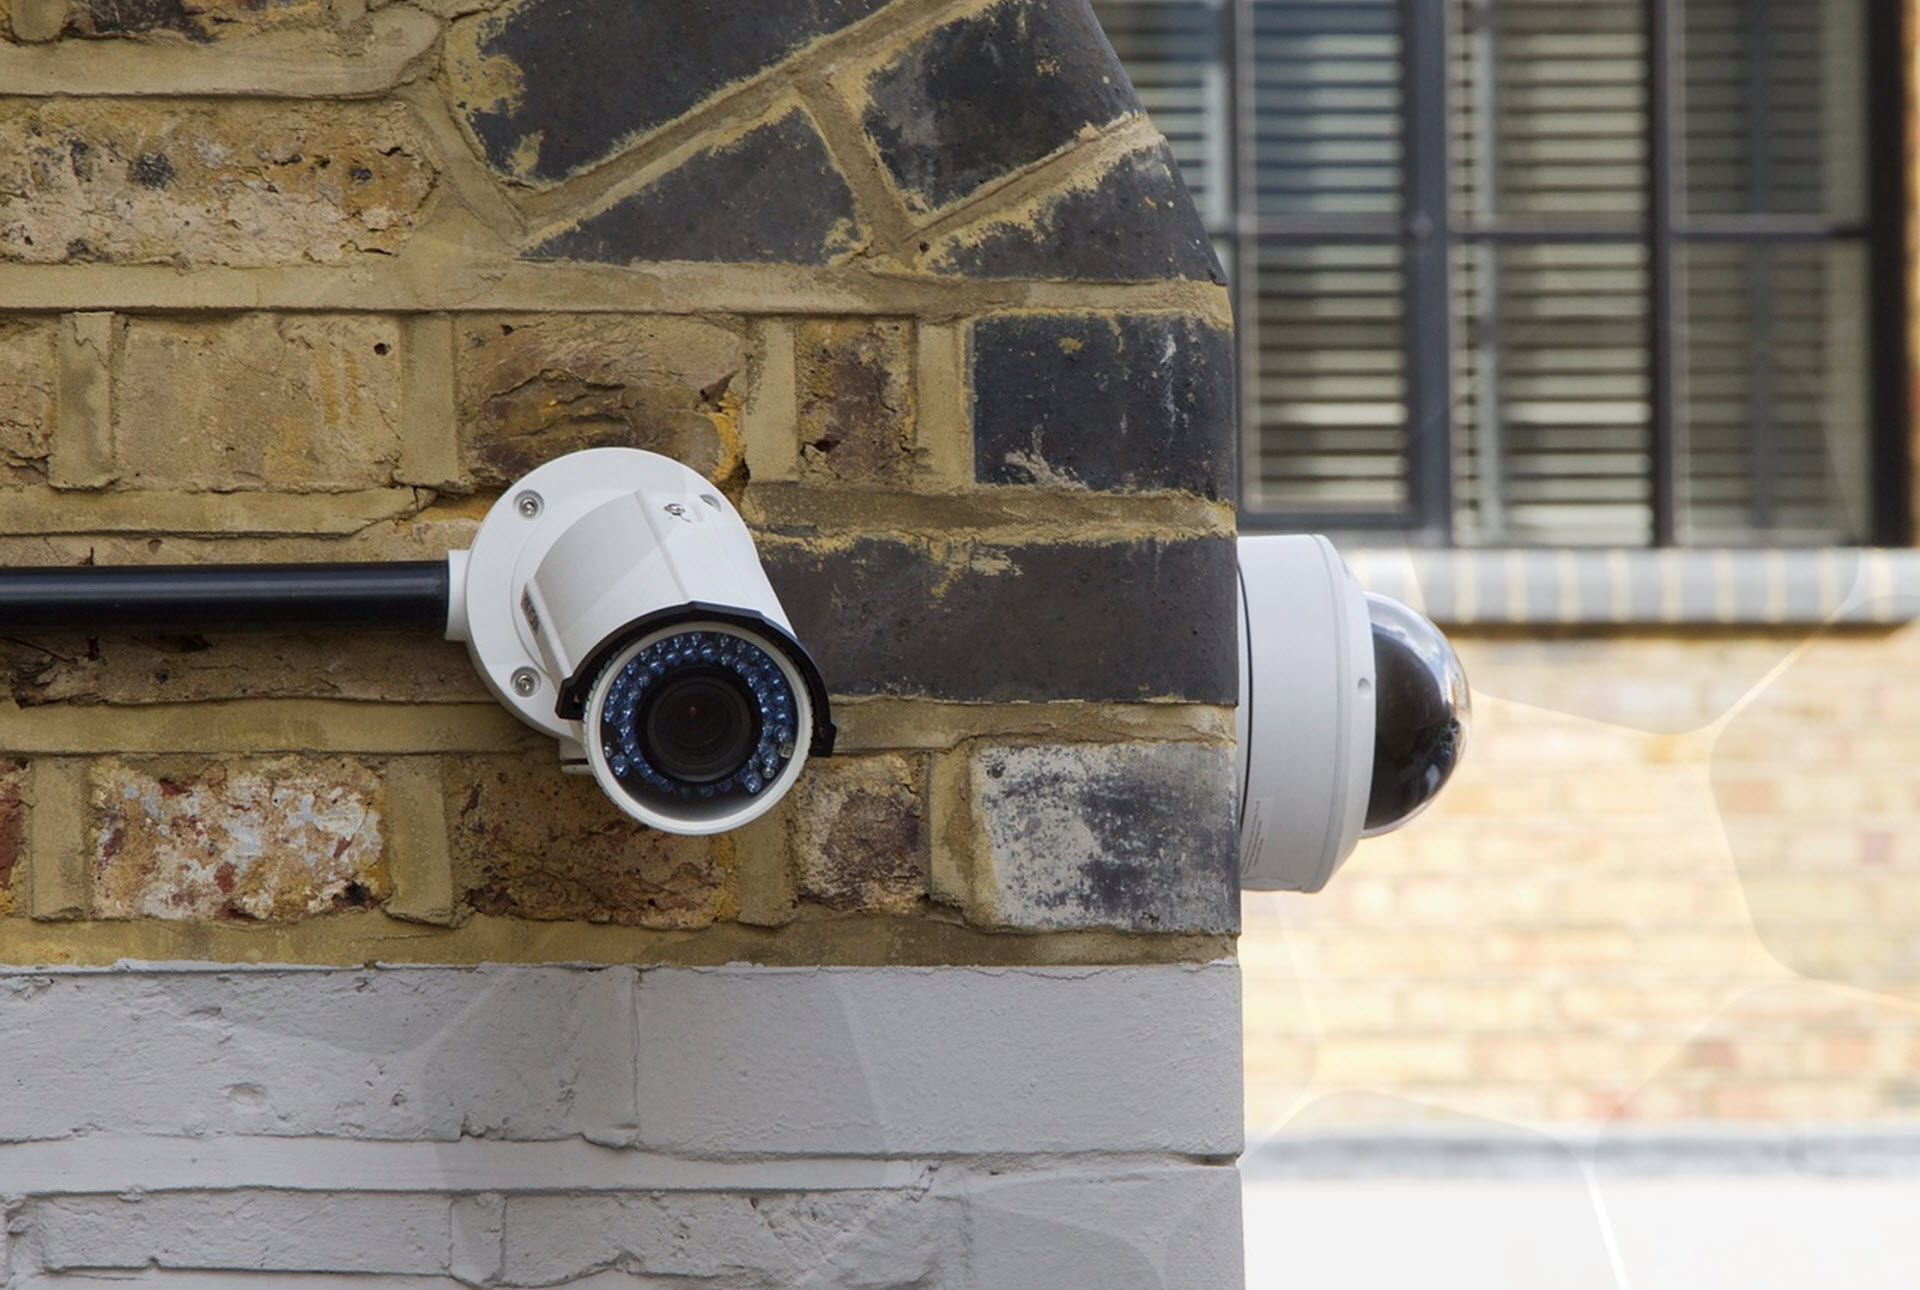 ClareVision Plus Video Monitoring - Finding the best camera for you